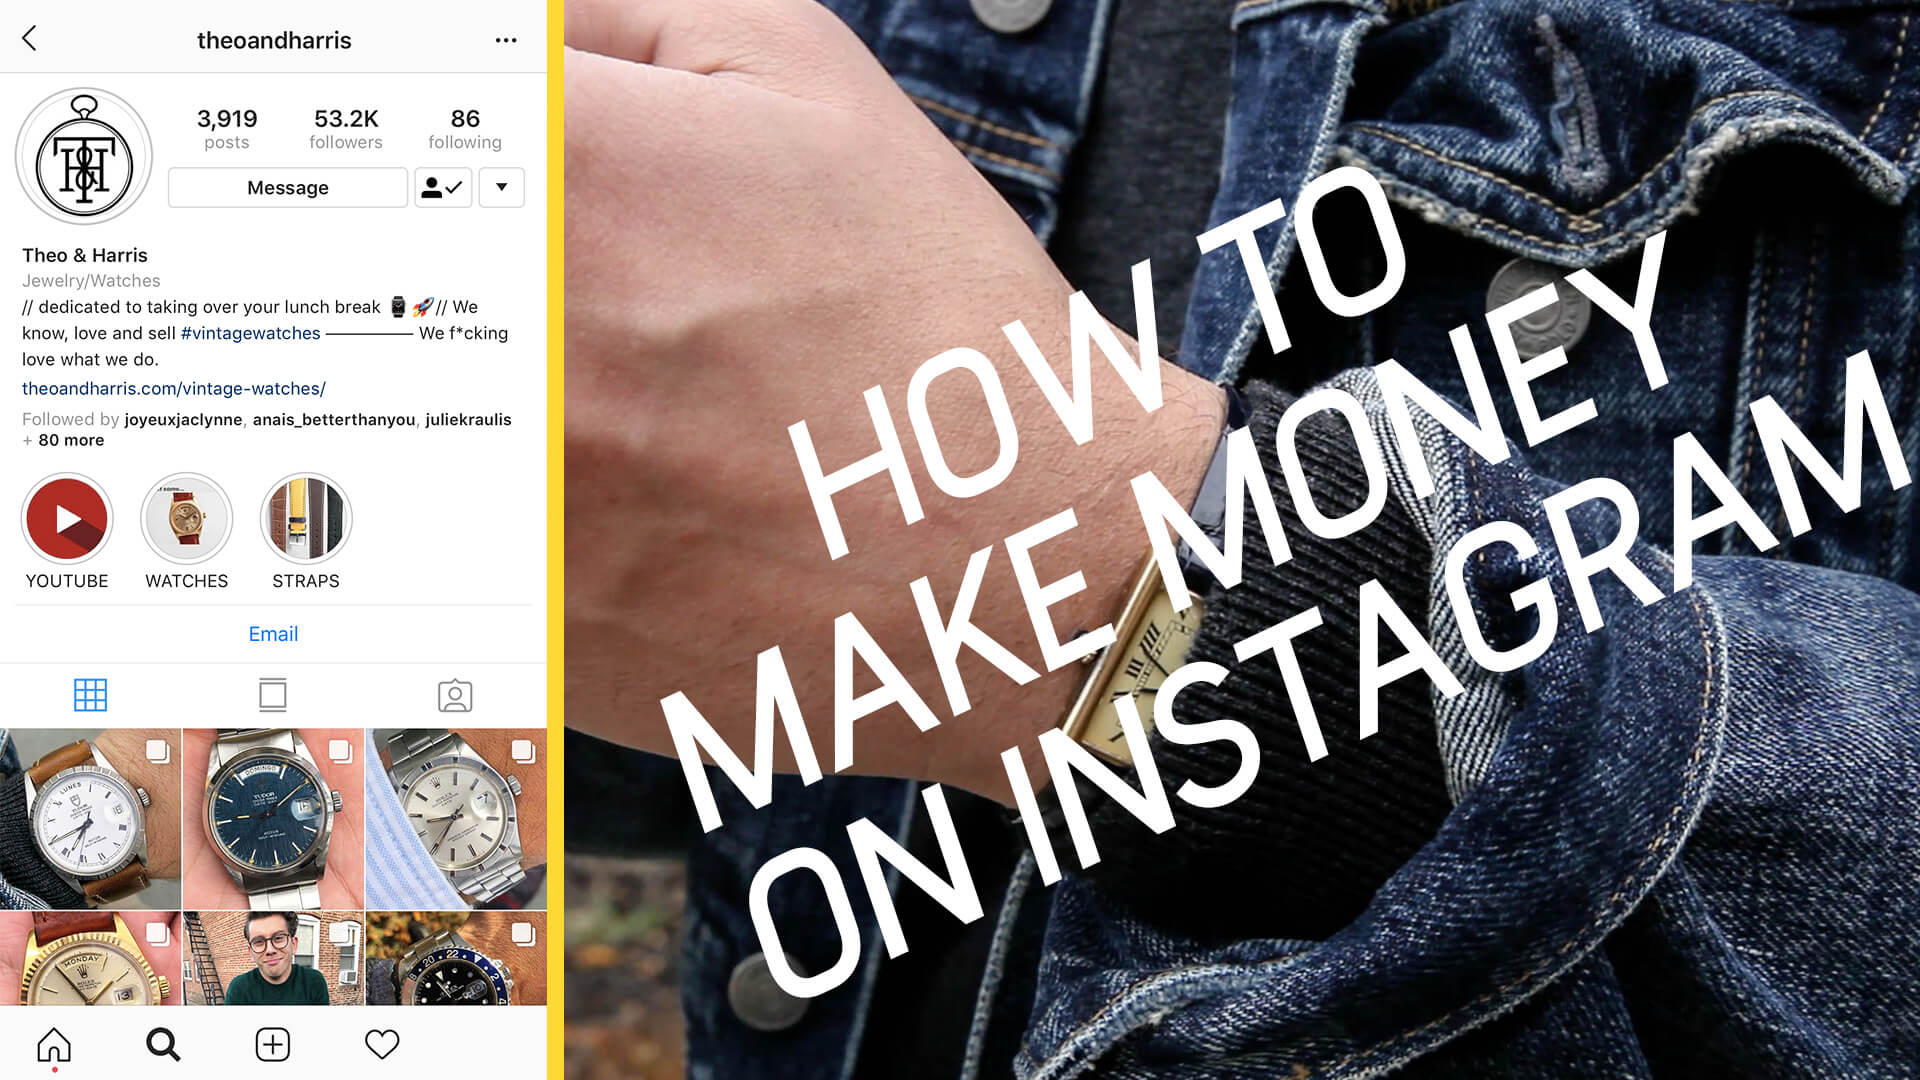 Off Topic: How To Make Money On Instagram